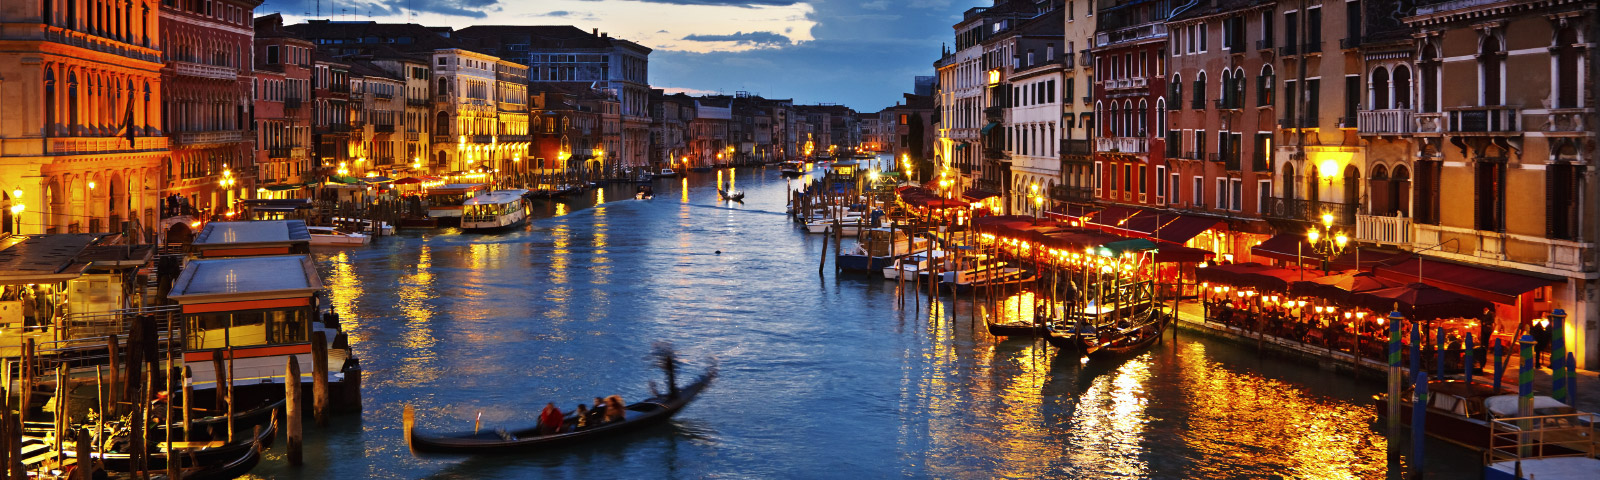 Magic of Venice